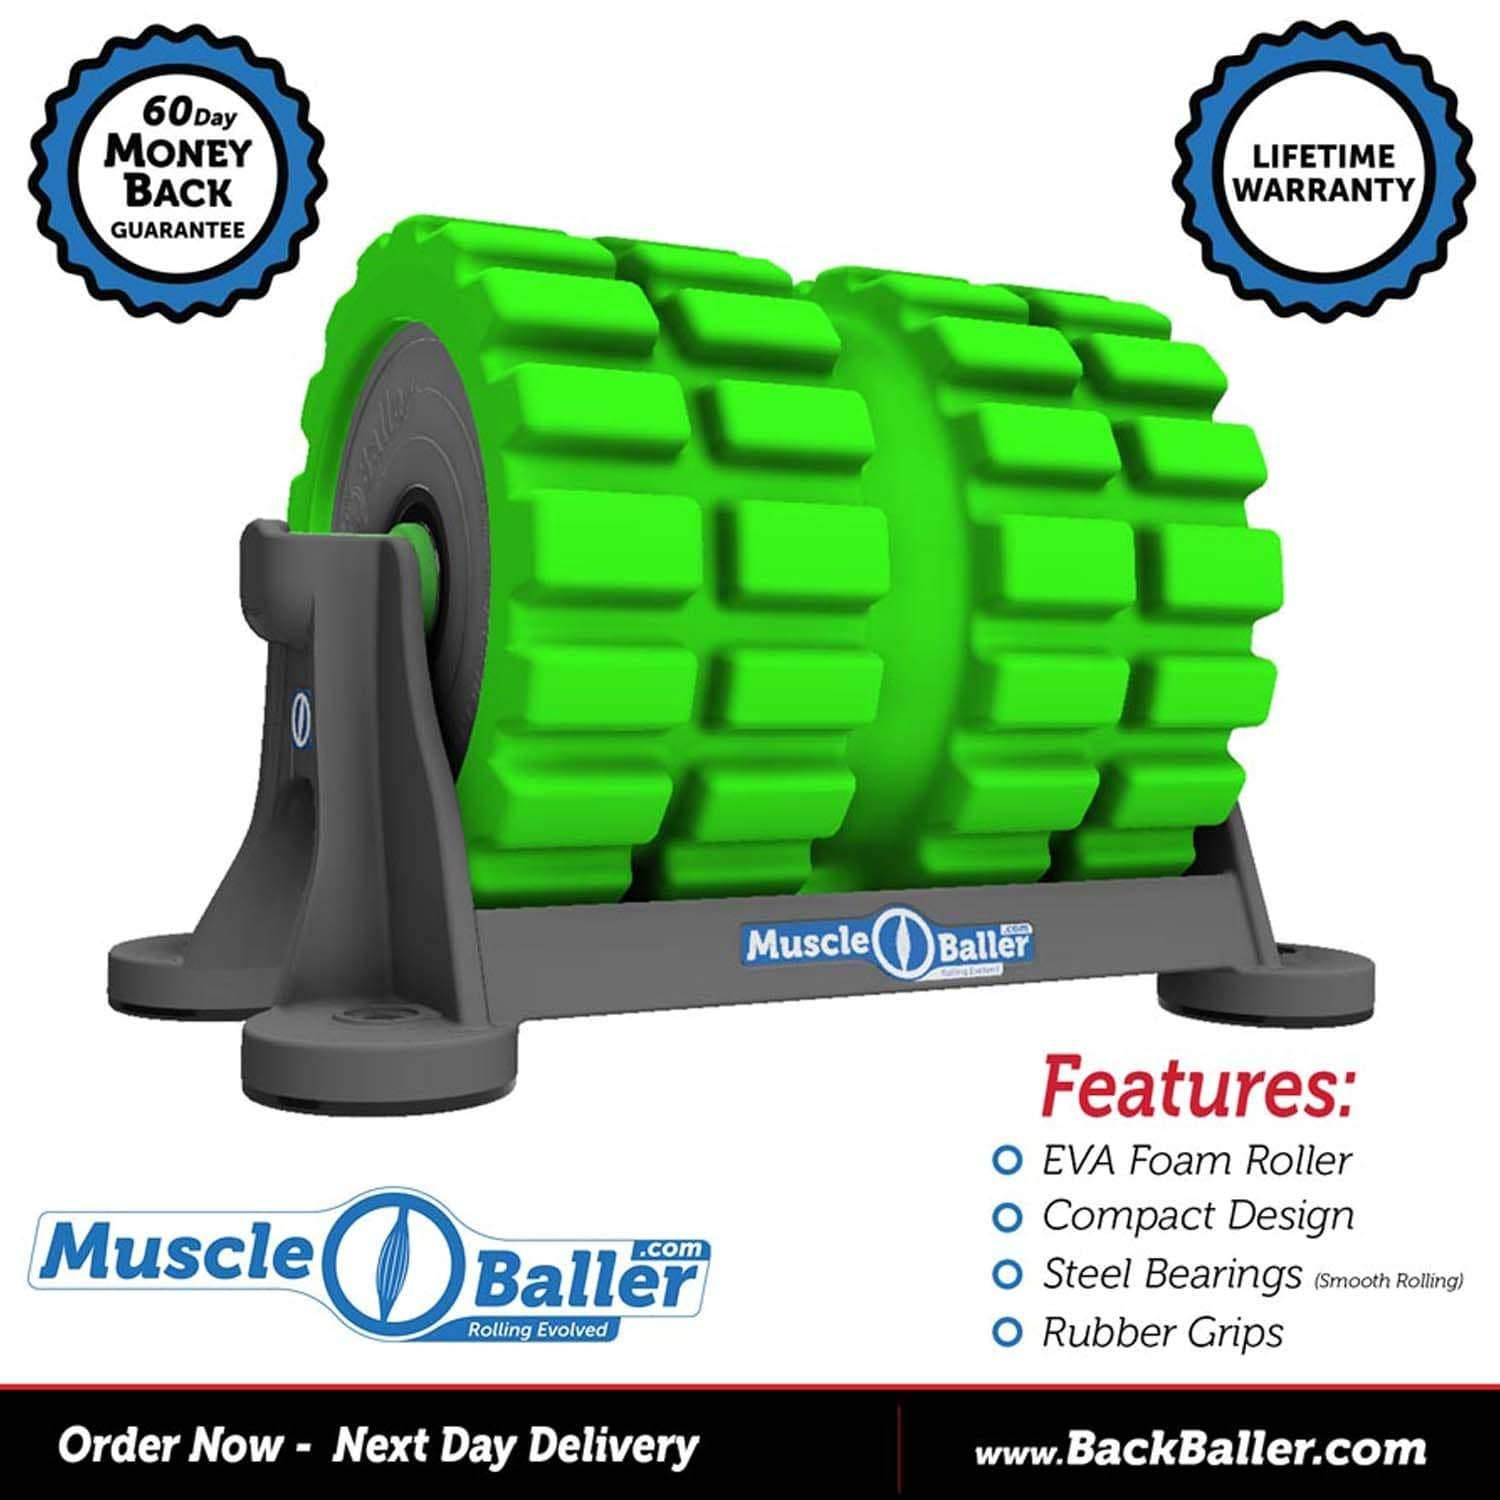 BackBaller MuscleBaller Foam Roller - Bourke Sports Limited